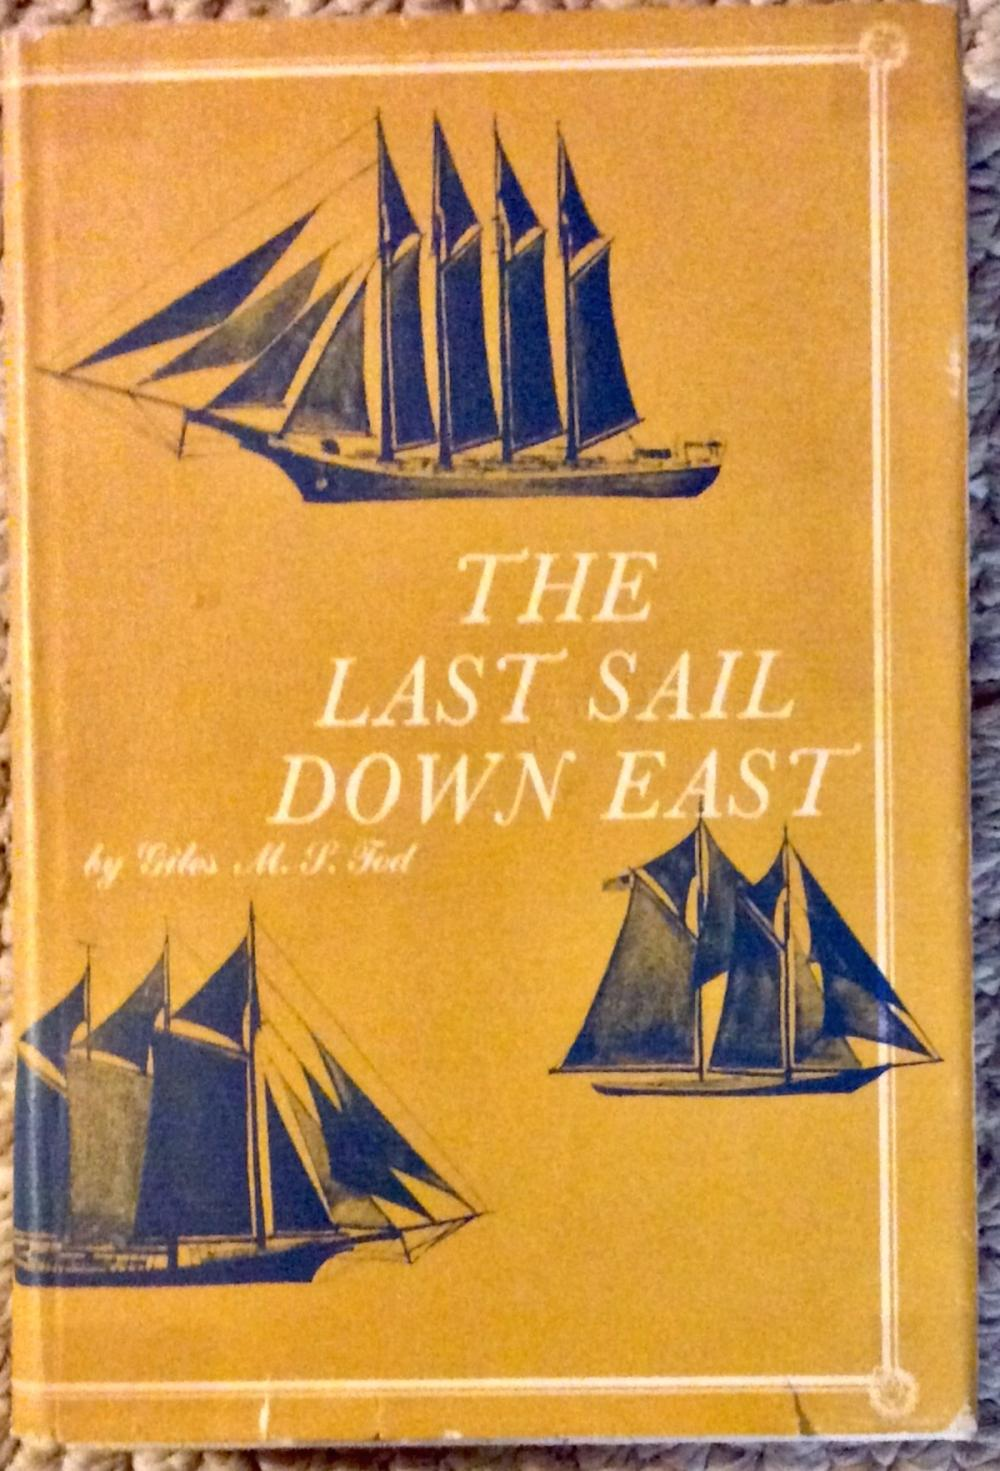 """The Last Sail Down East"" by Giles Tod VINTAGE 1965 Hardcover Nautical History Of The Last Of The Windjammers 1st Edition 1st Printing In DJ"